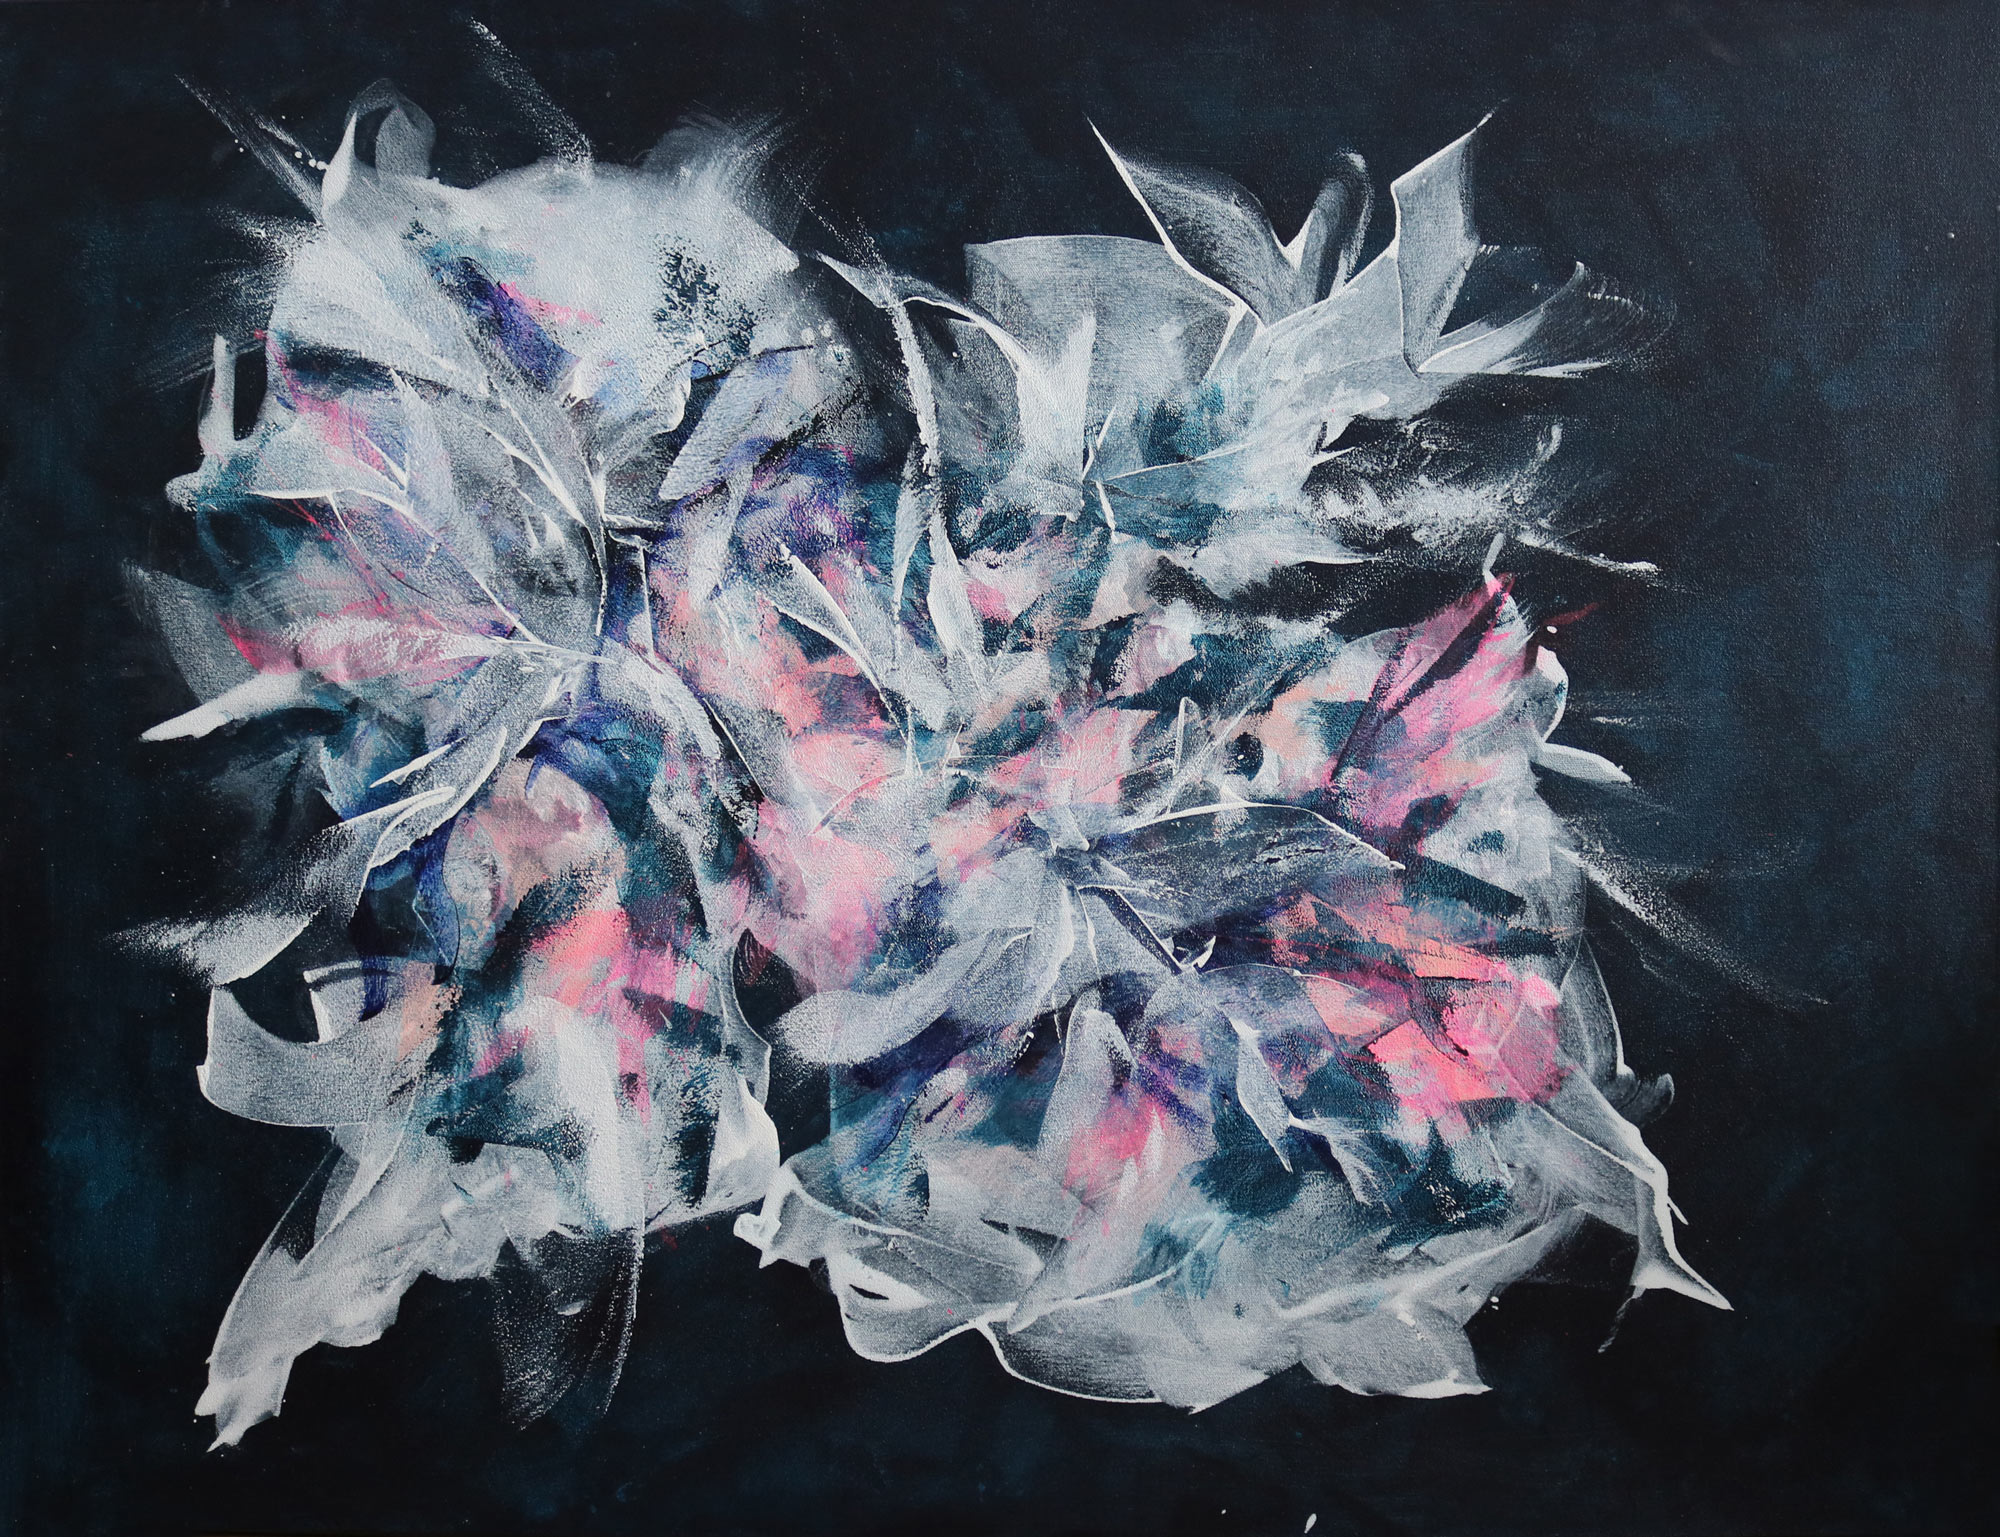 Iced-abstract-painting-paigering.jpg